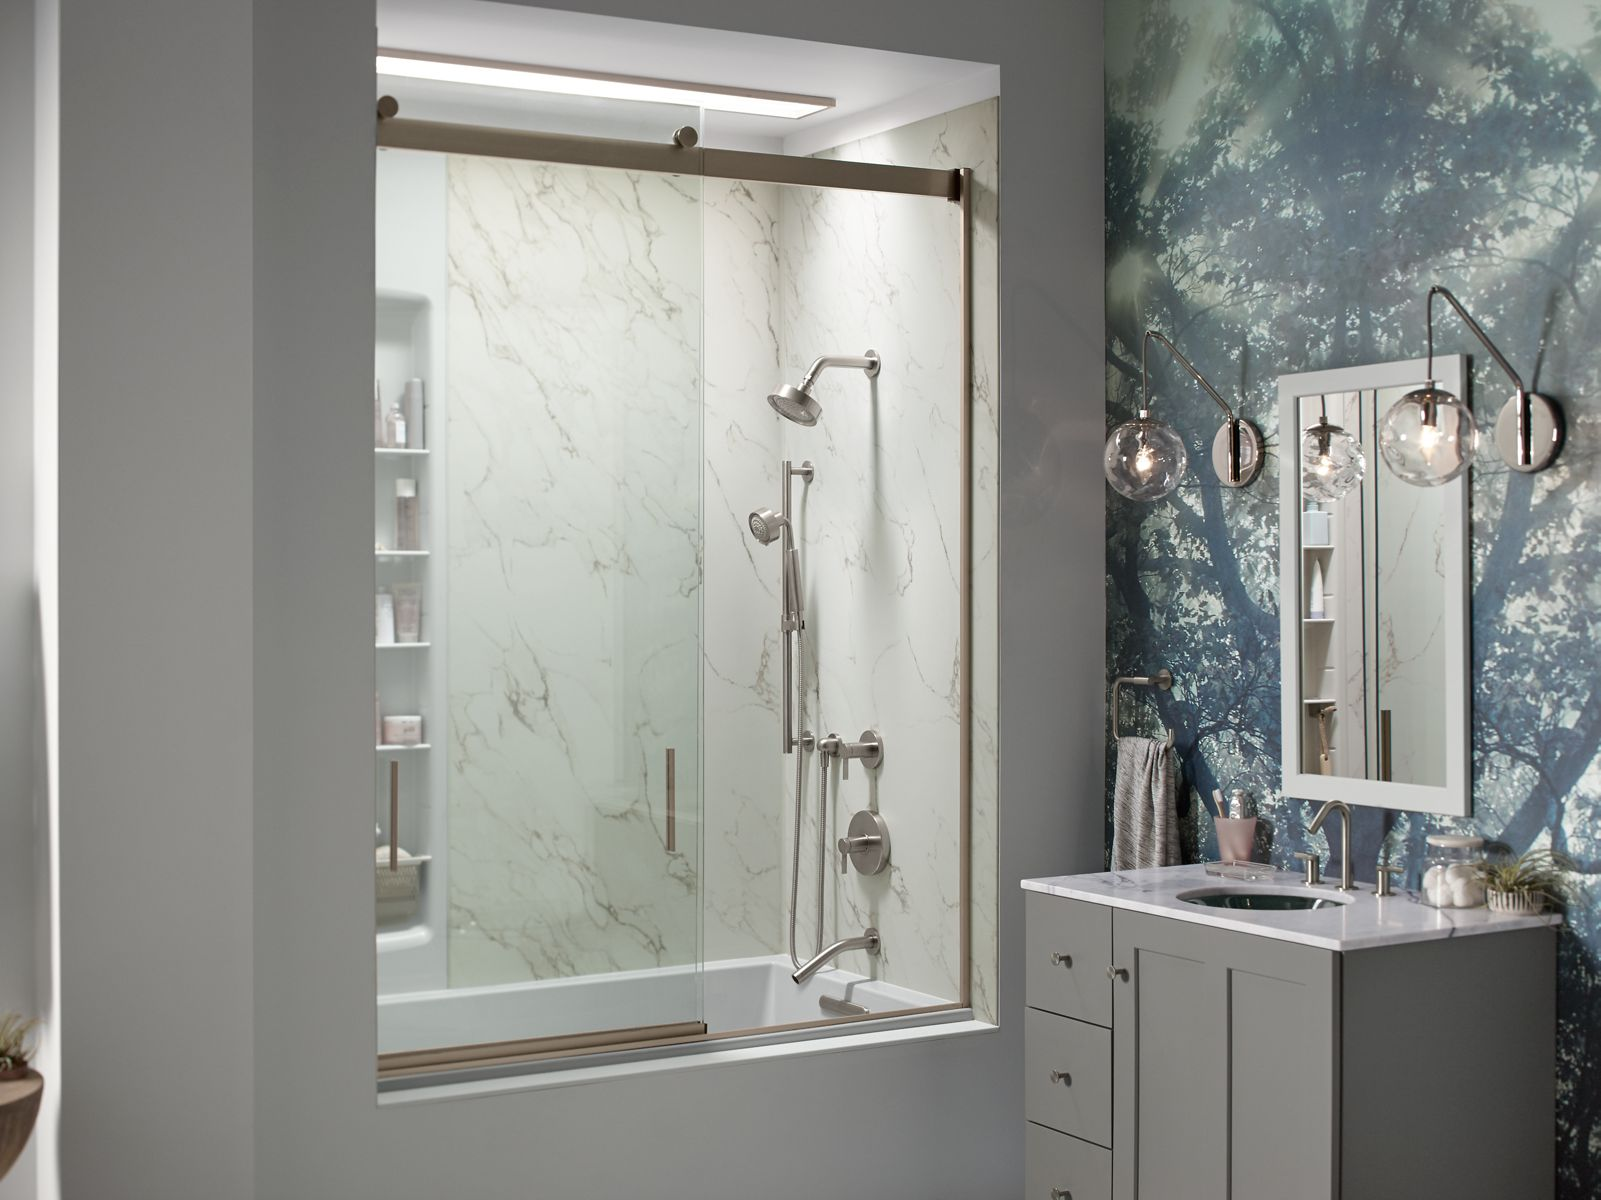 Bathroom Mirror Non Steam shower door guide | bathroom | kohler